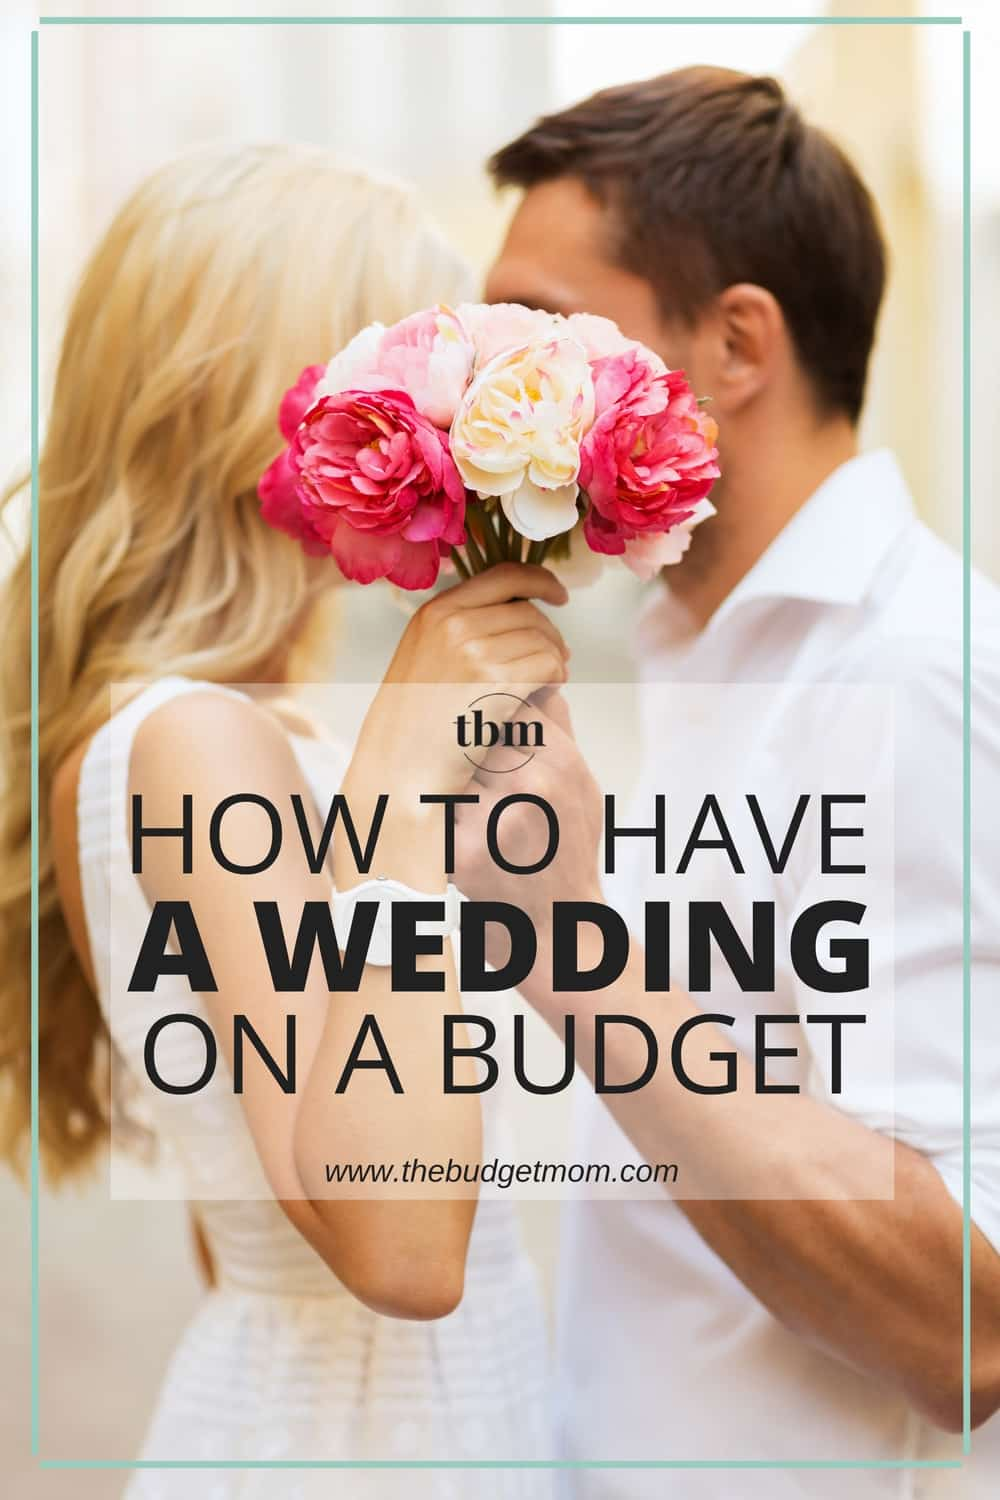 A budget wedding doesn't have to feel cheap. Click to read the full article where I share some great ways to save money on one of the most important days of your life.